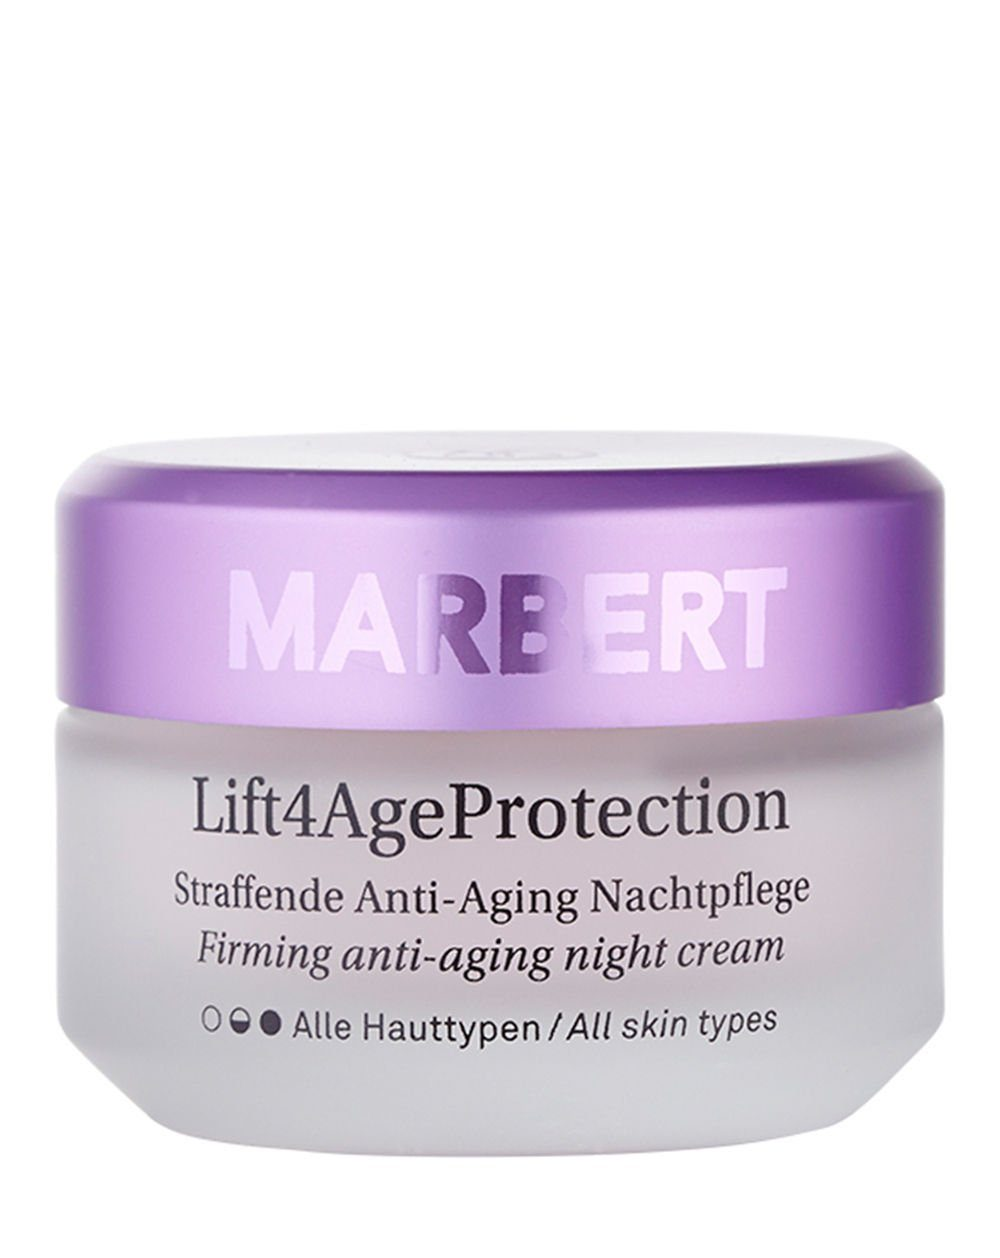 Marbert Nachtpflege »Lift4Age Protection«